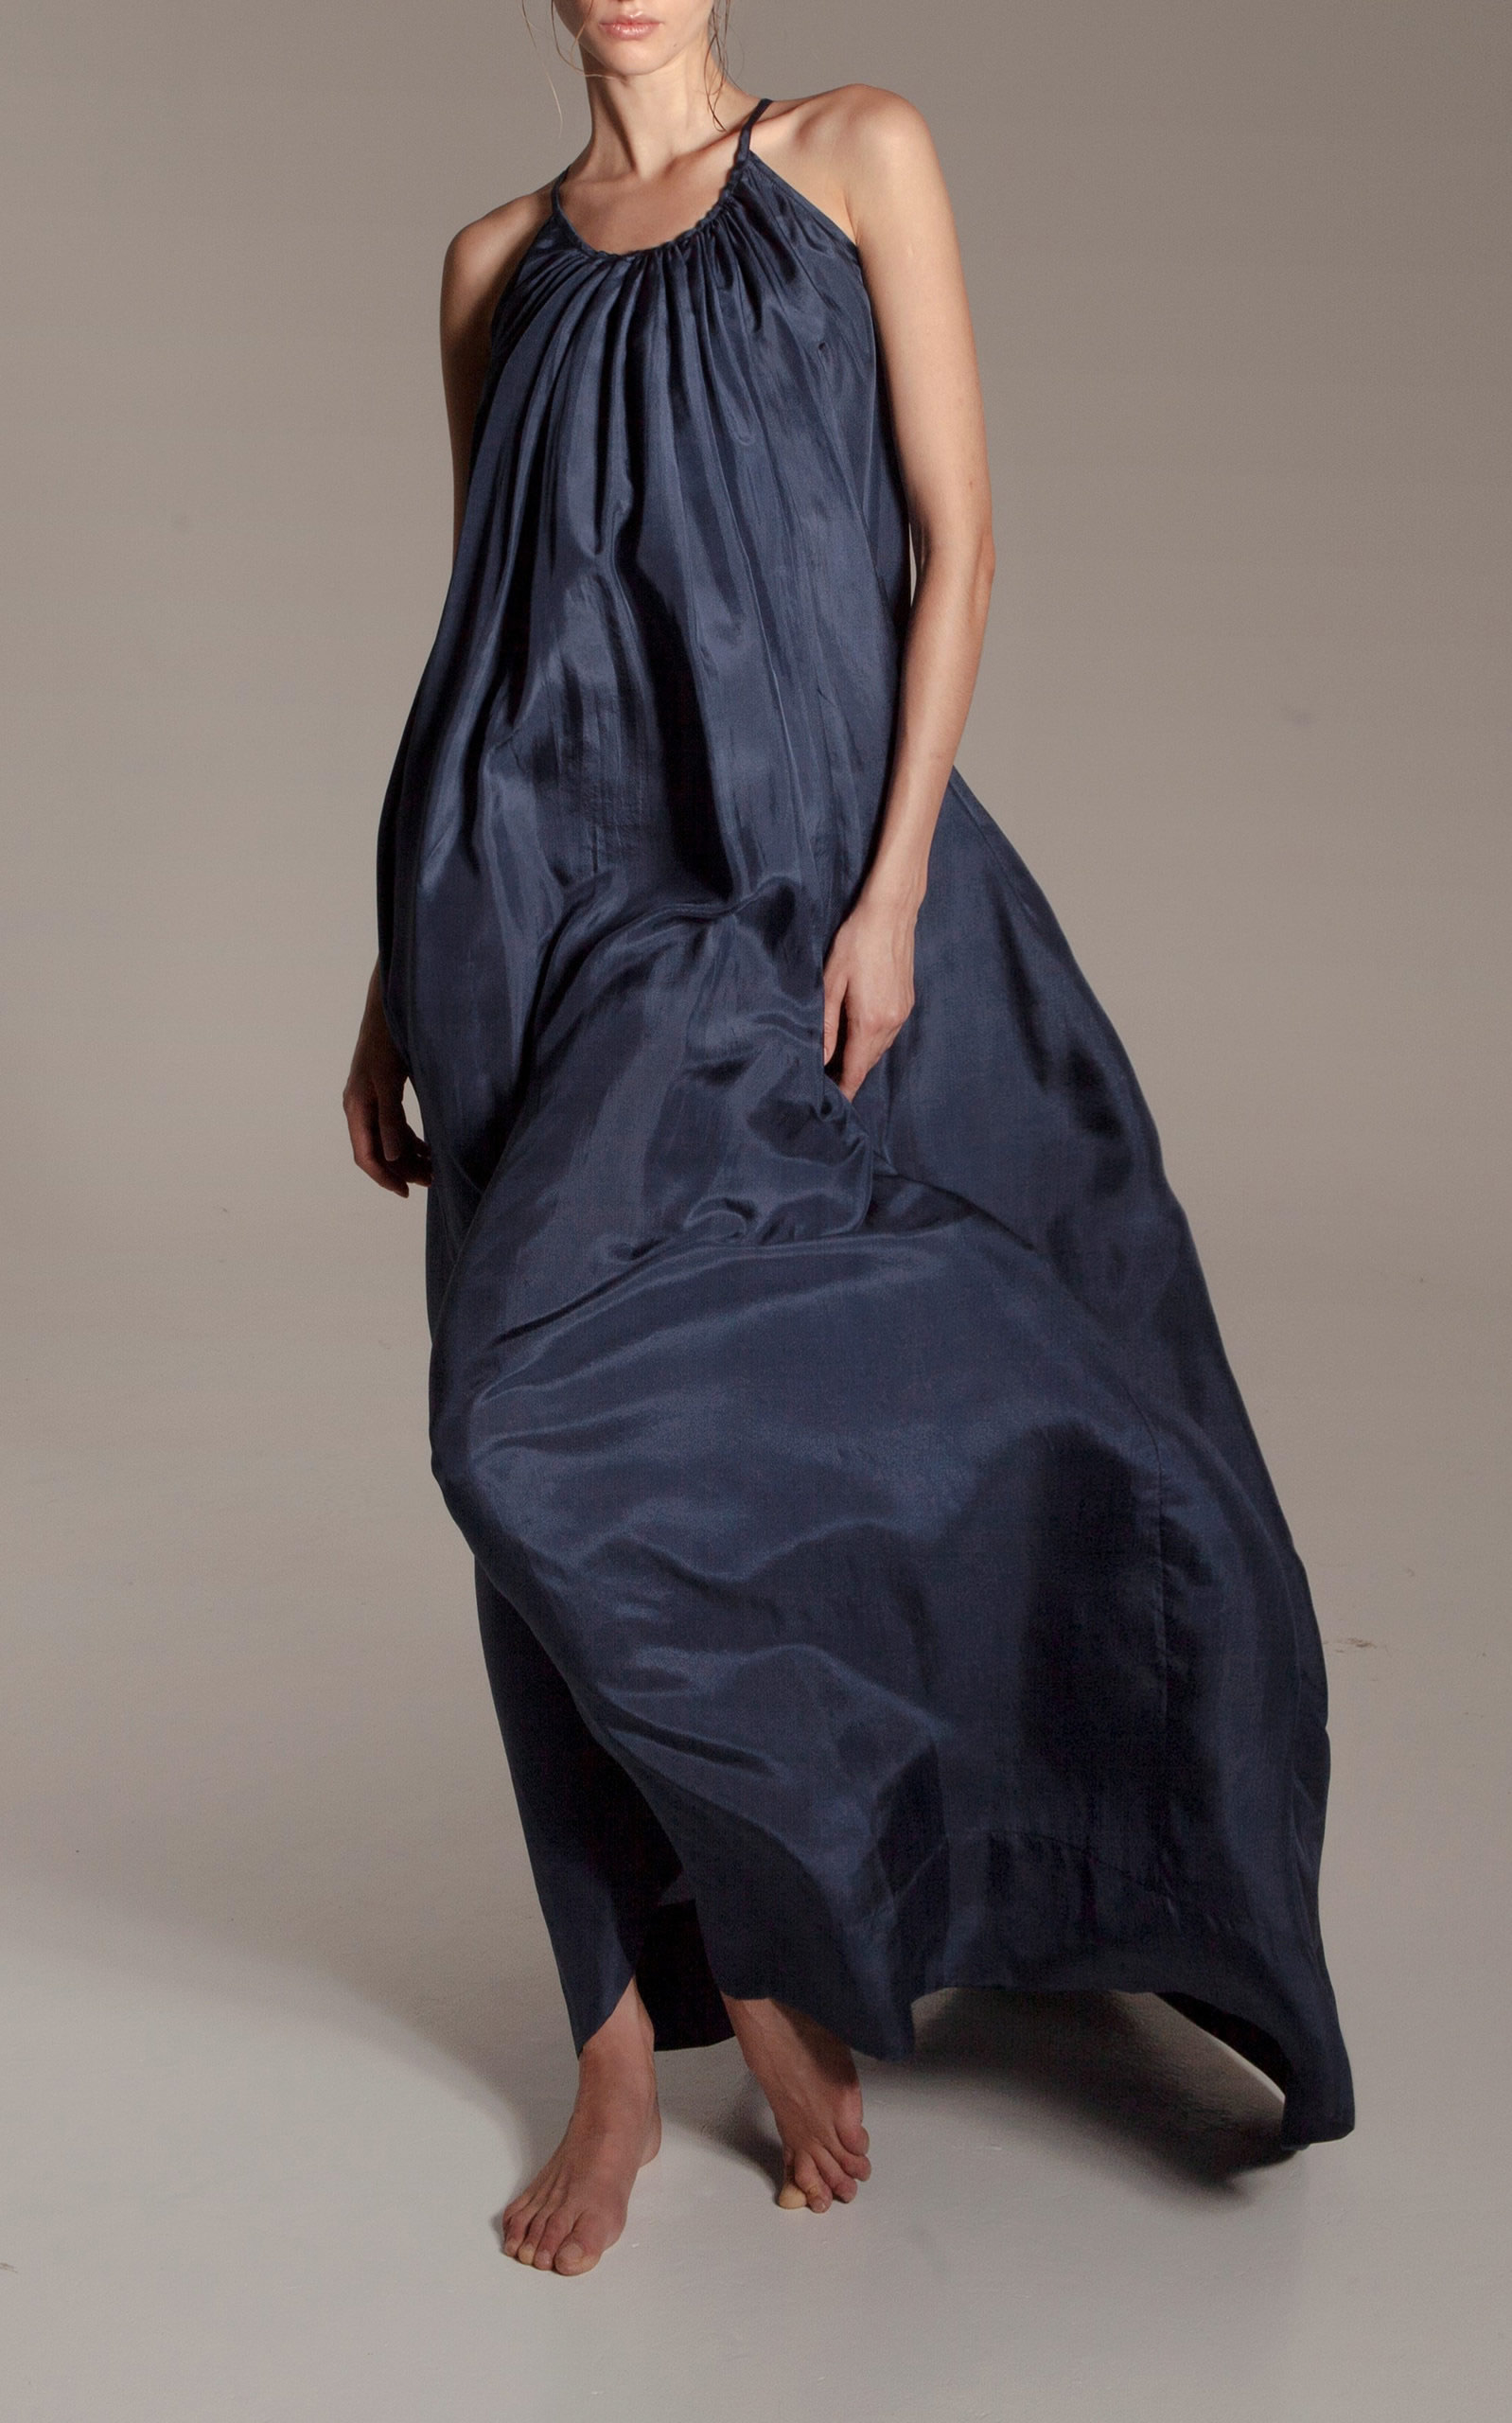 Kalita - Destination Wear - Genevieve Silk Maxi Dress